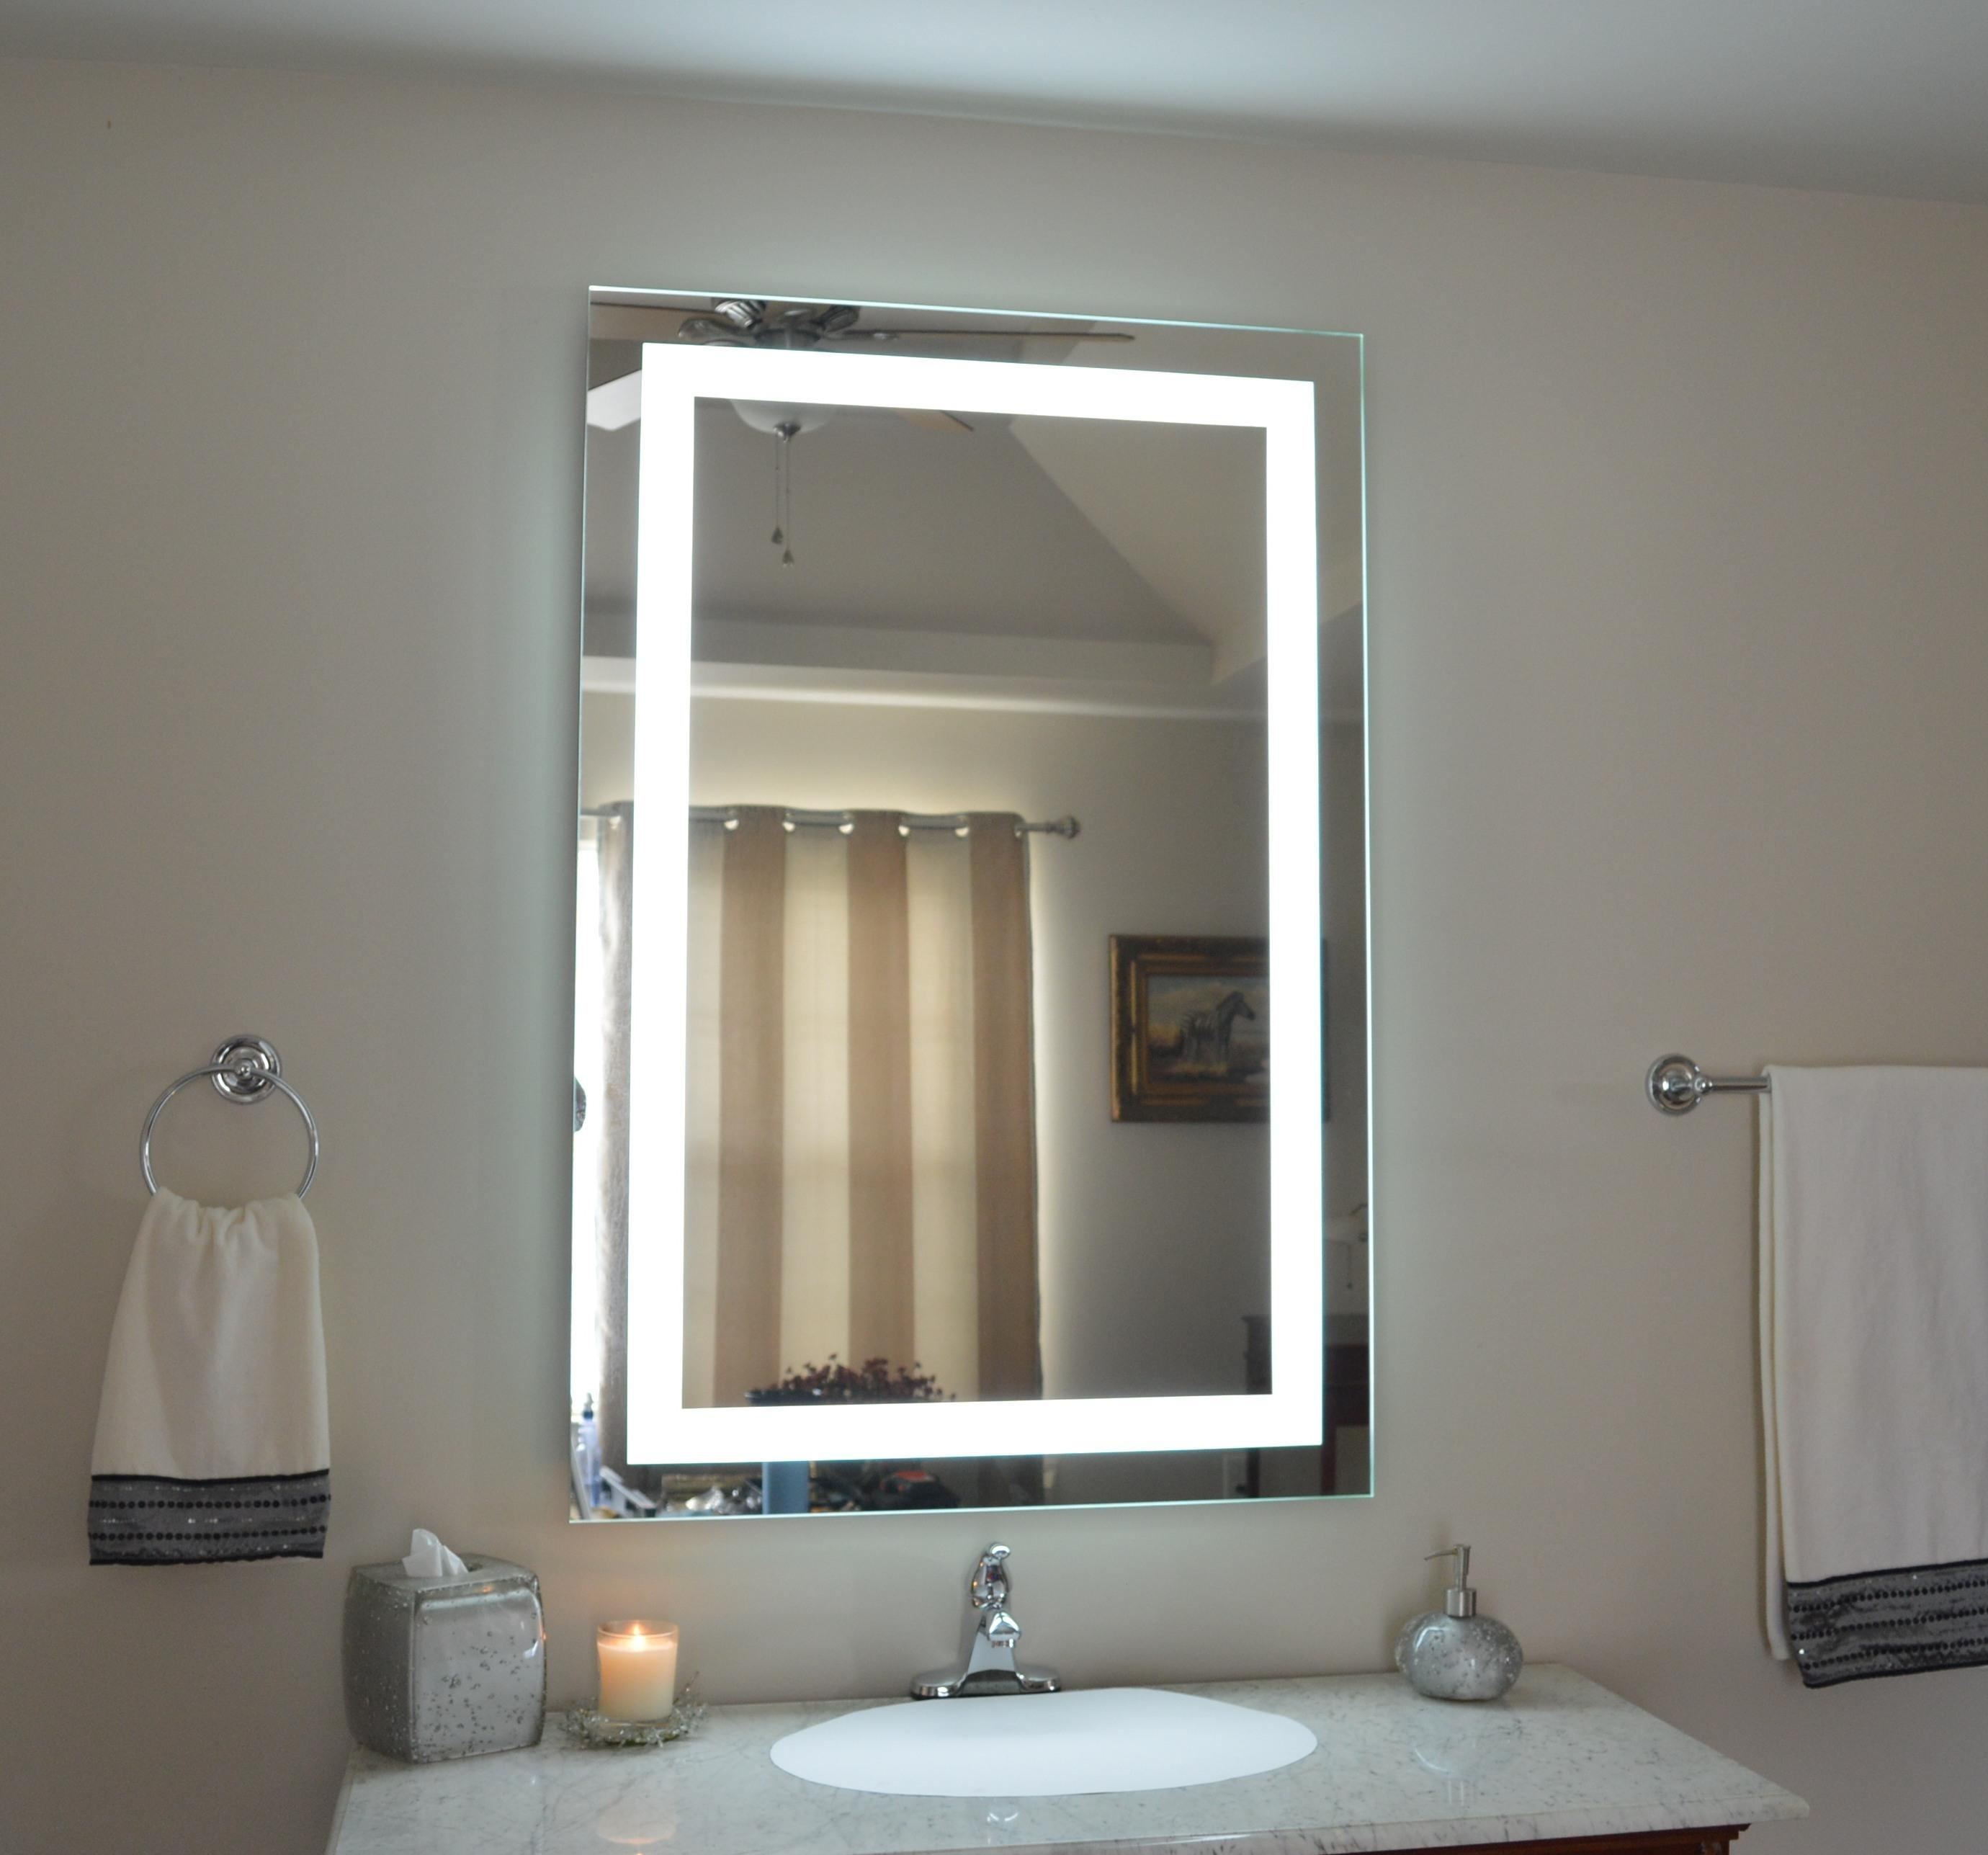 Lighted Vanity Mirror With Regard To Lighted Vanity Wall Mirrors (Image 13 of 20)